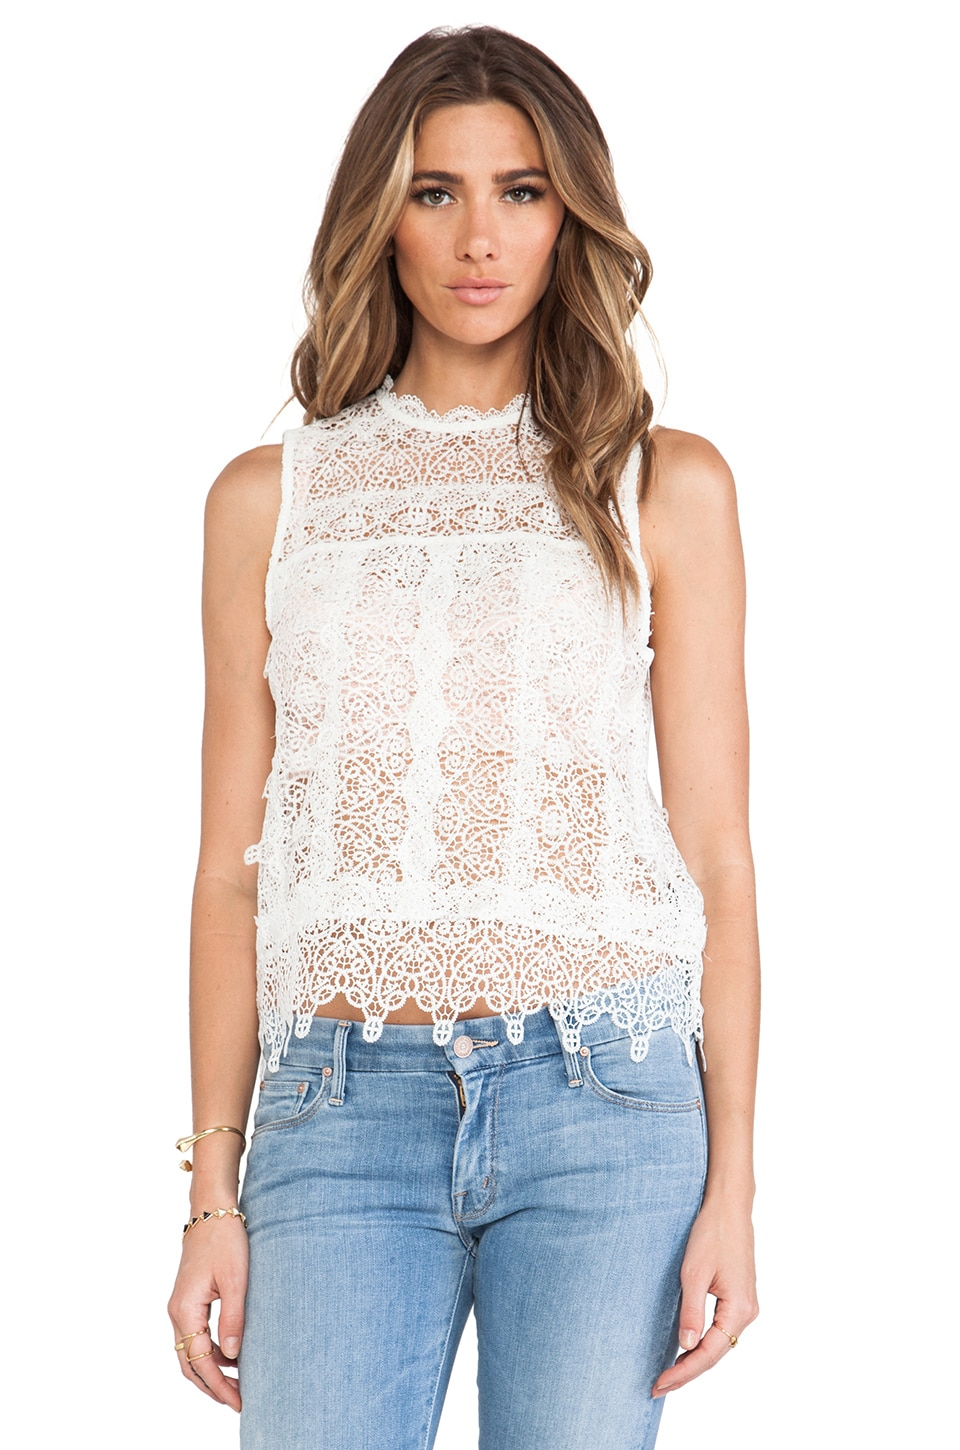 Dolce Vita Hagia Top in White